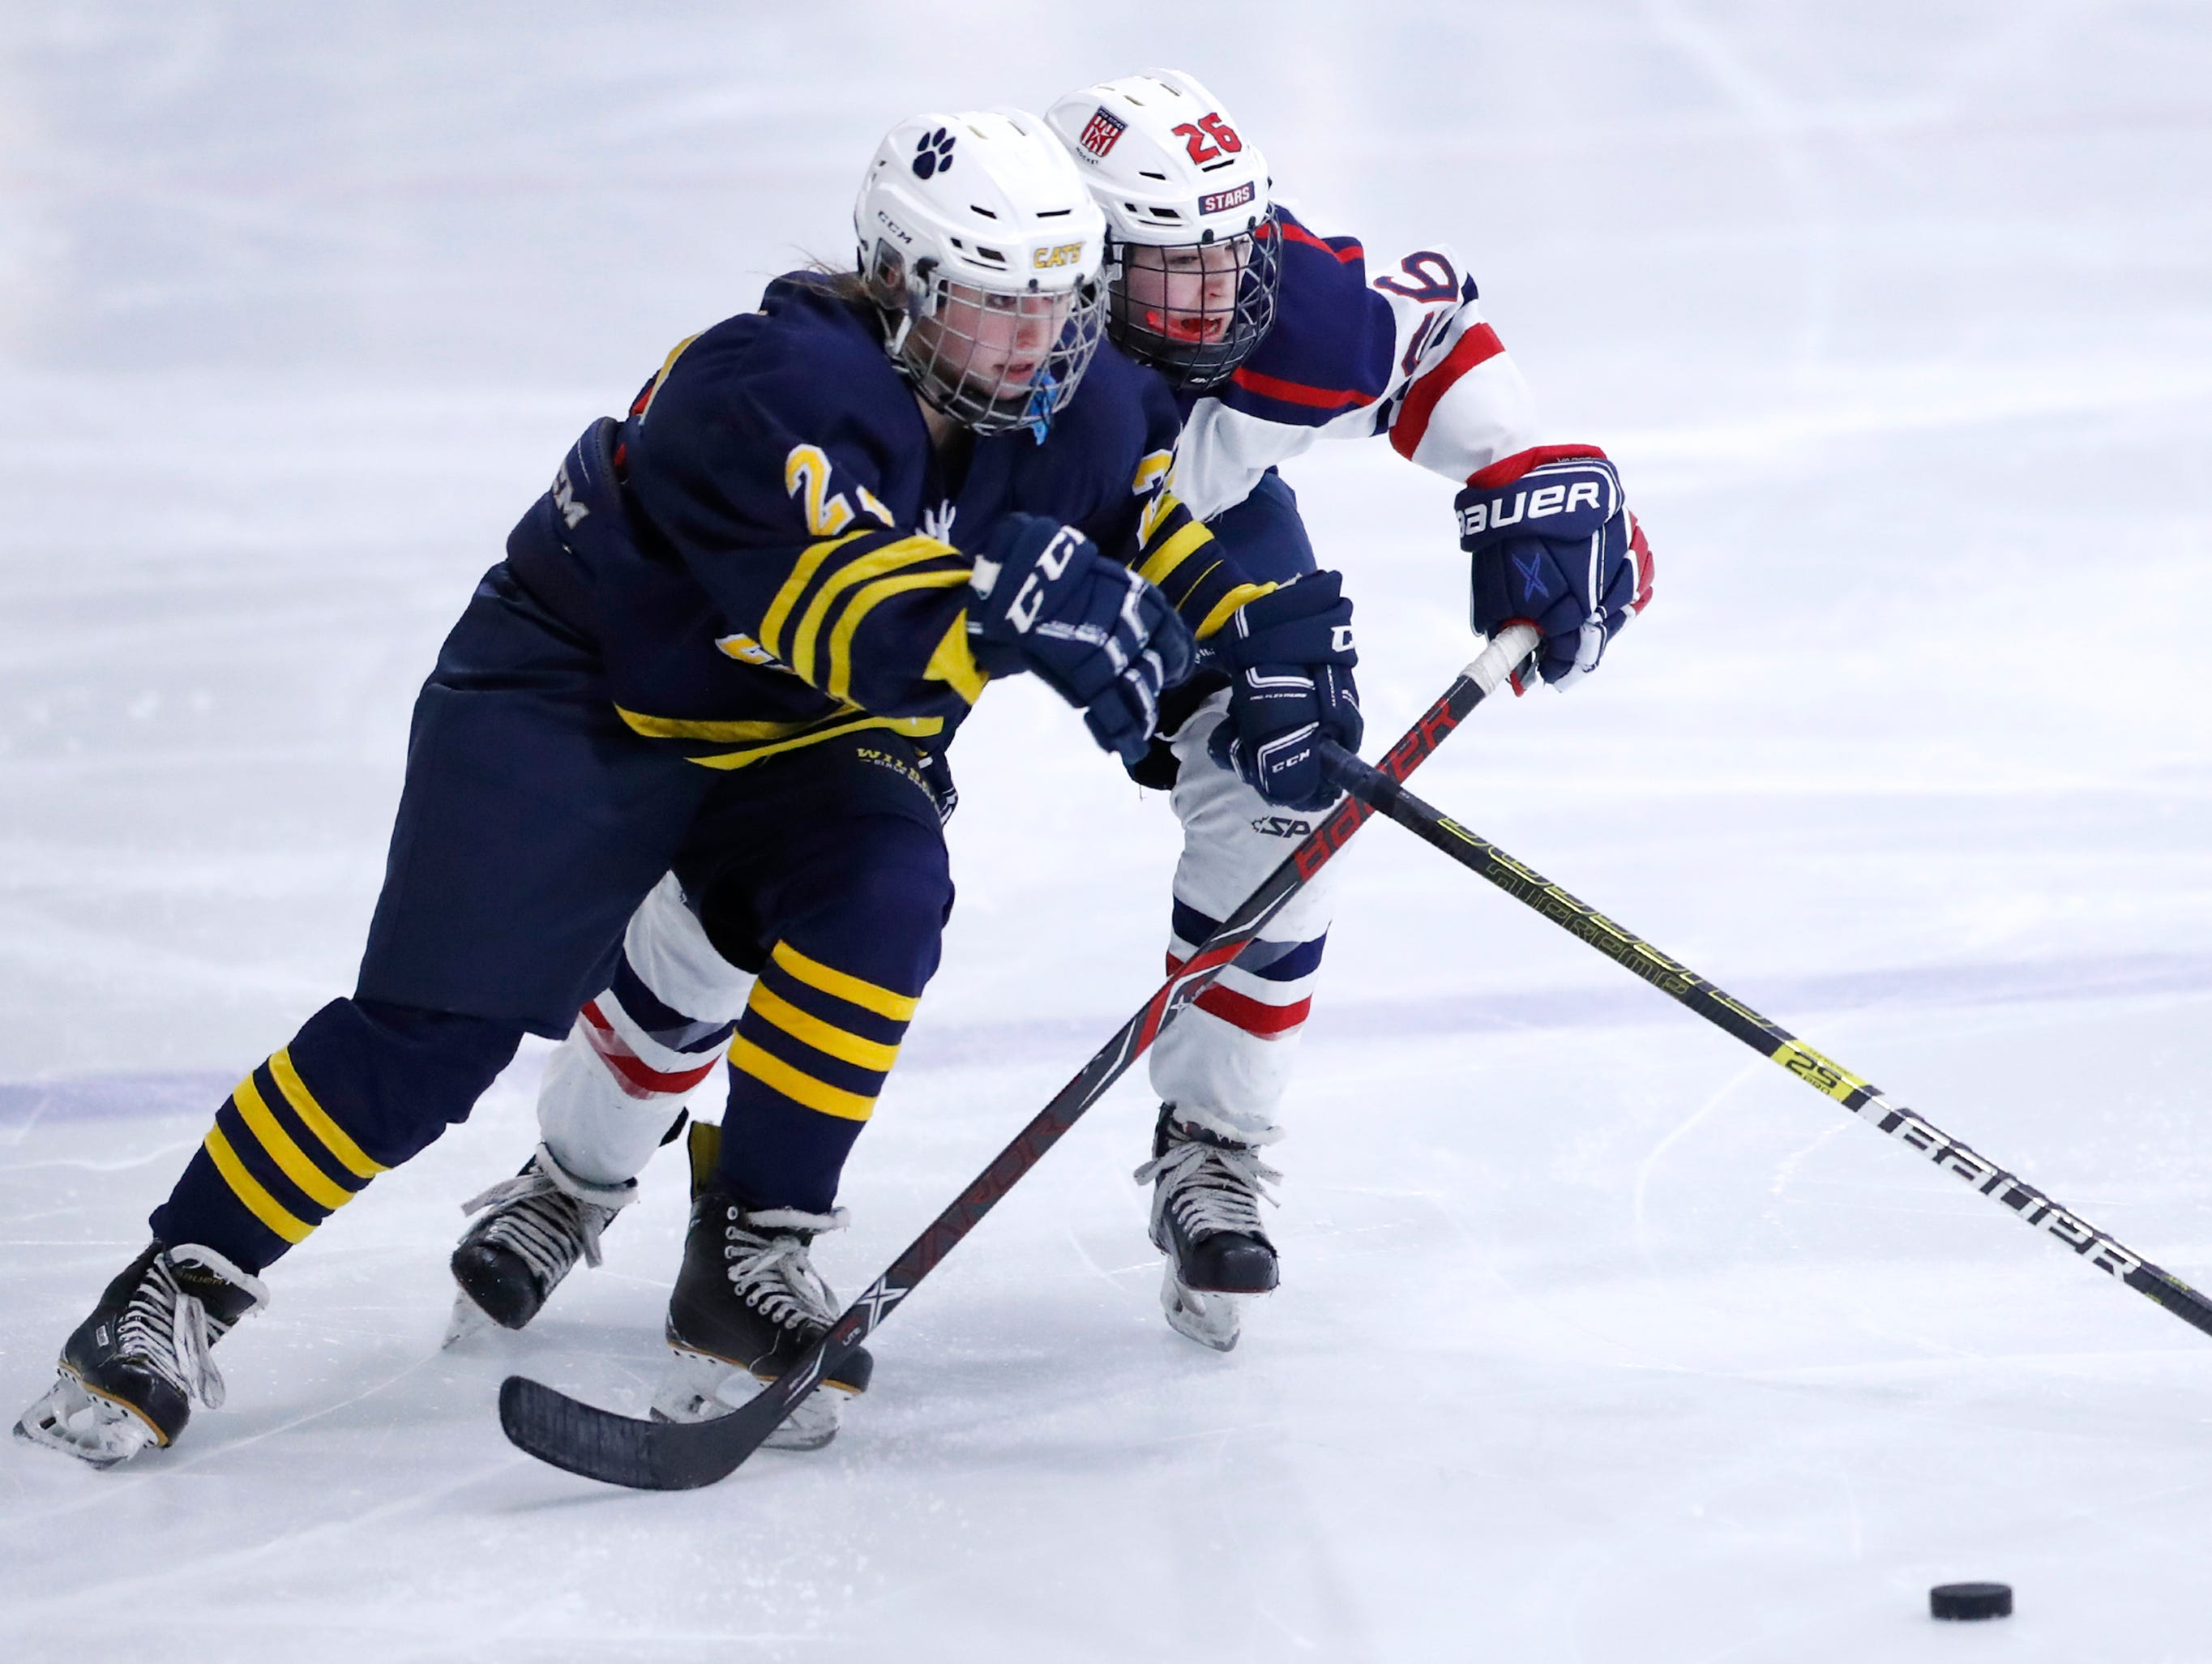 University School Co-opÕs Jordan Bonk and Fox Cities StarsÕ McKayla Zilisch races after the puck during their sectional semifinal Tuesday, Feb. 19, 2019, at theTri-County Ice Arena in Neenah, Wis.Danny Damiani/USA TODAY NETWORK-Wisconsin